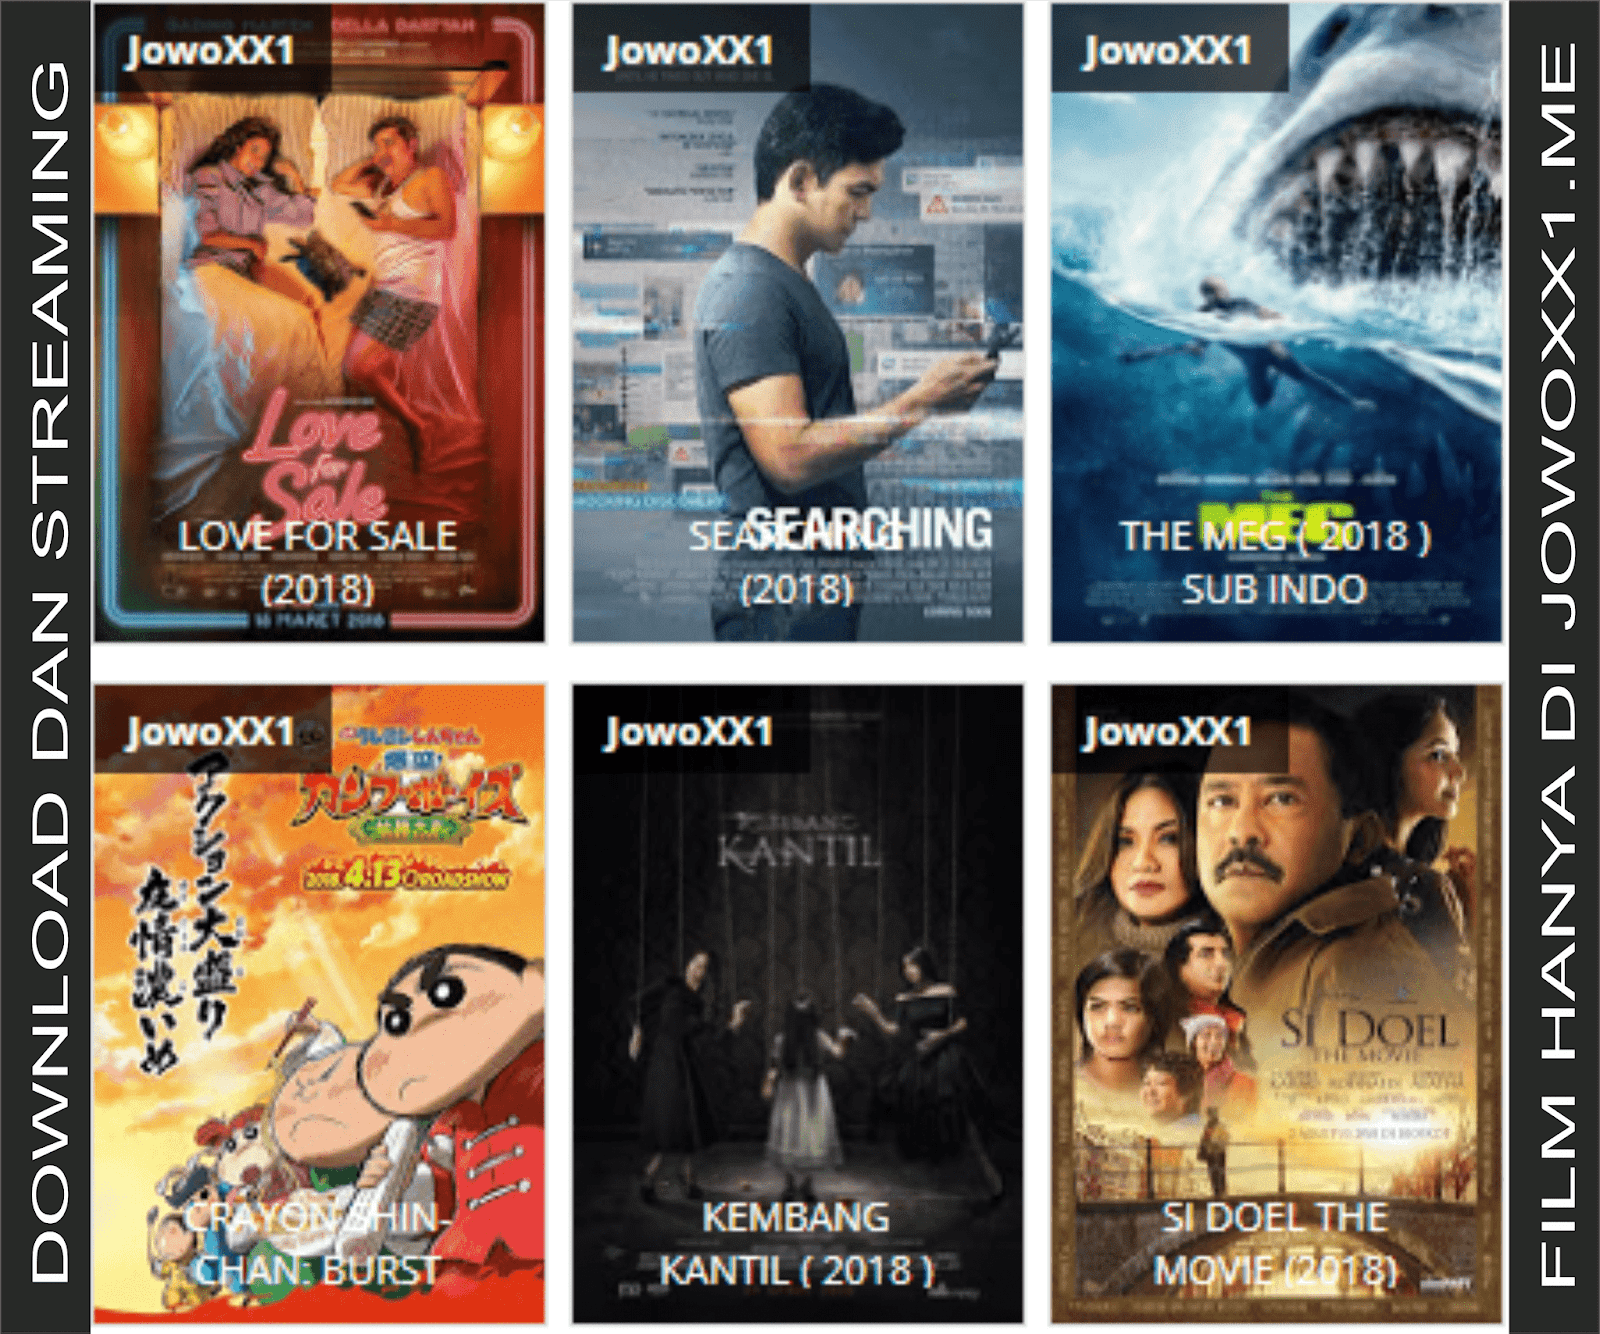 Streaming dan Download Film Gratis